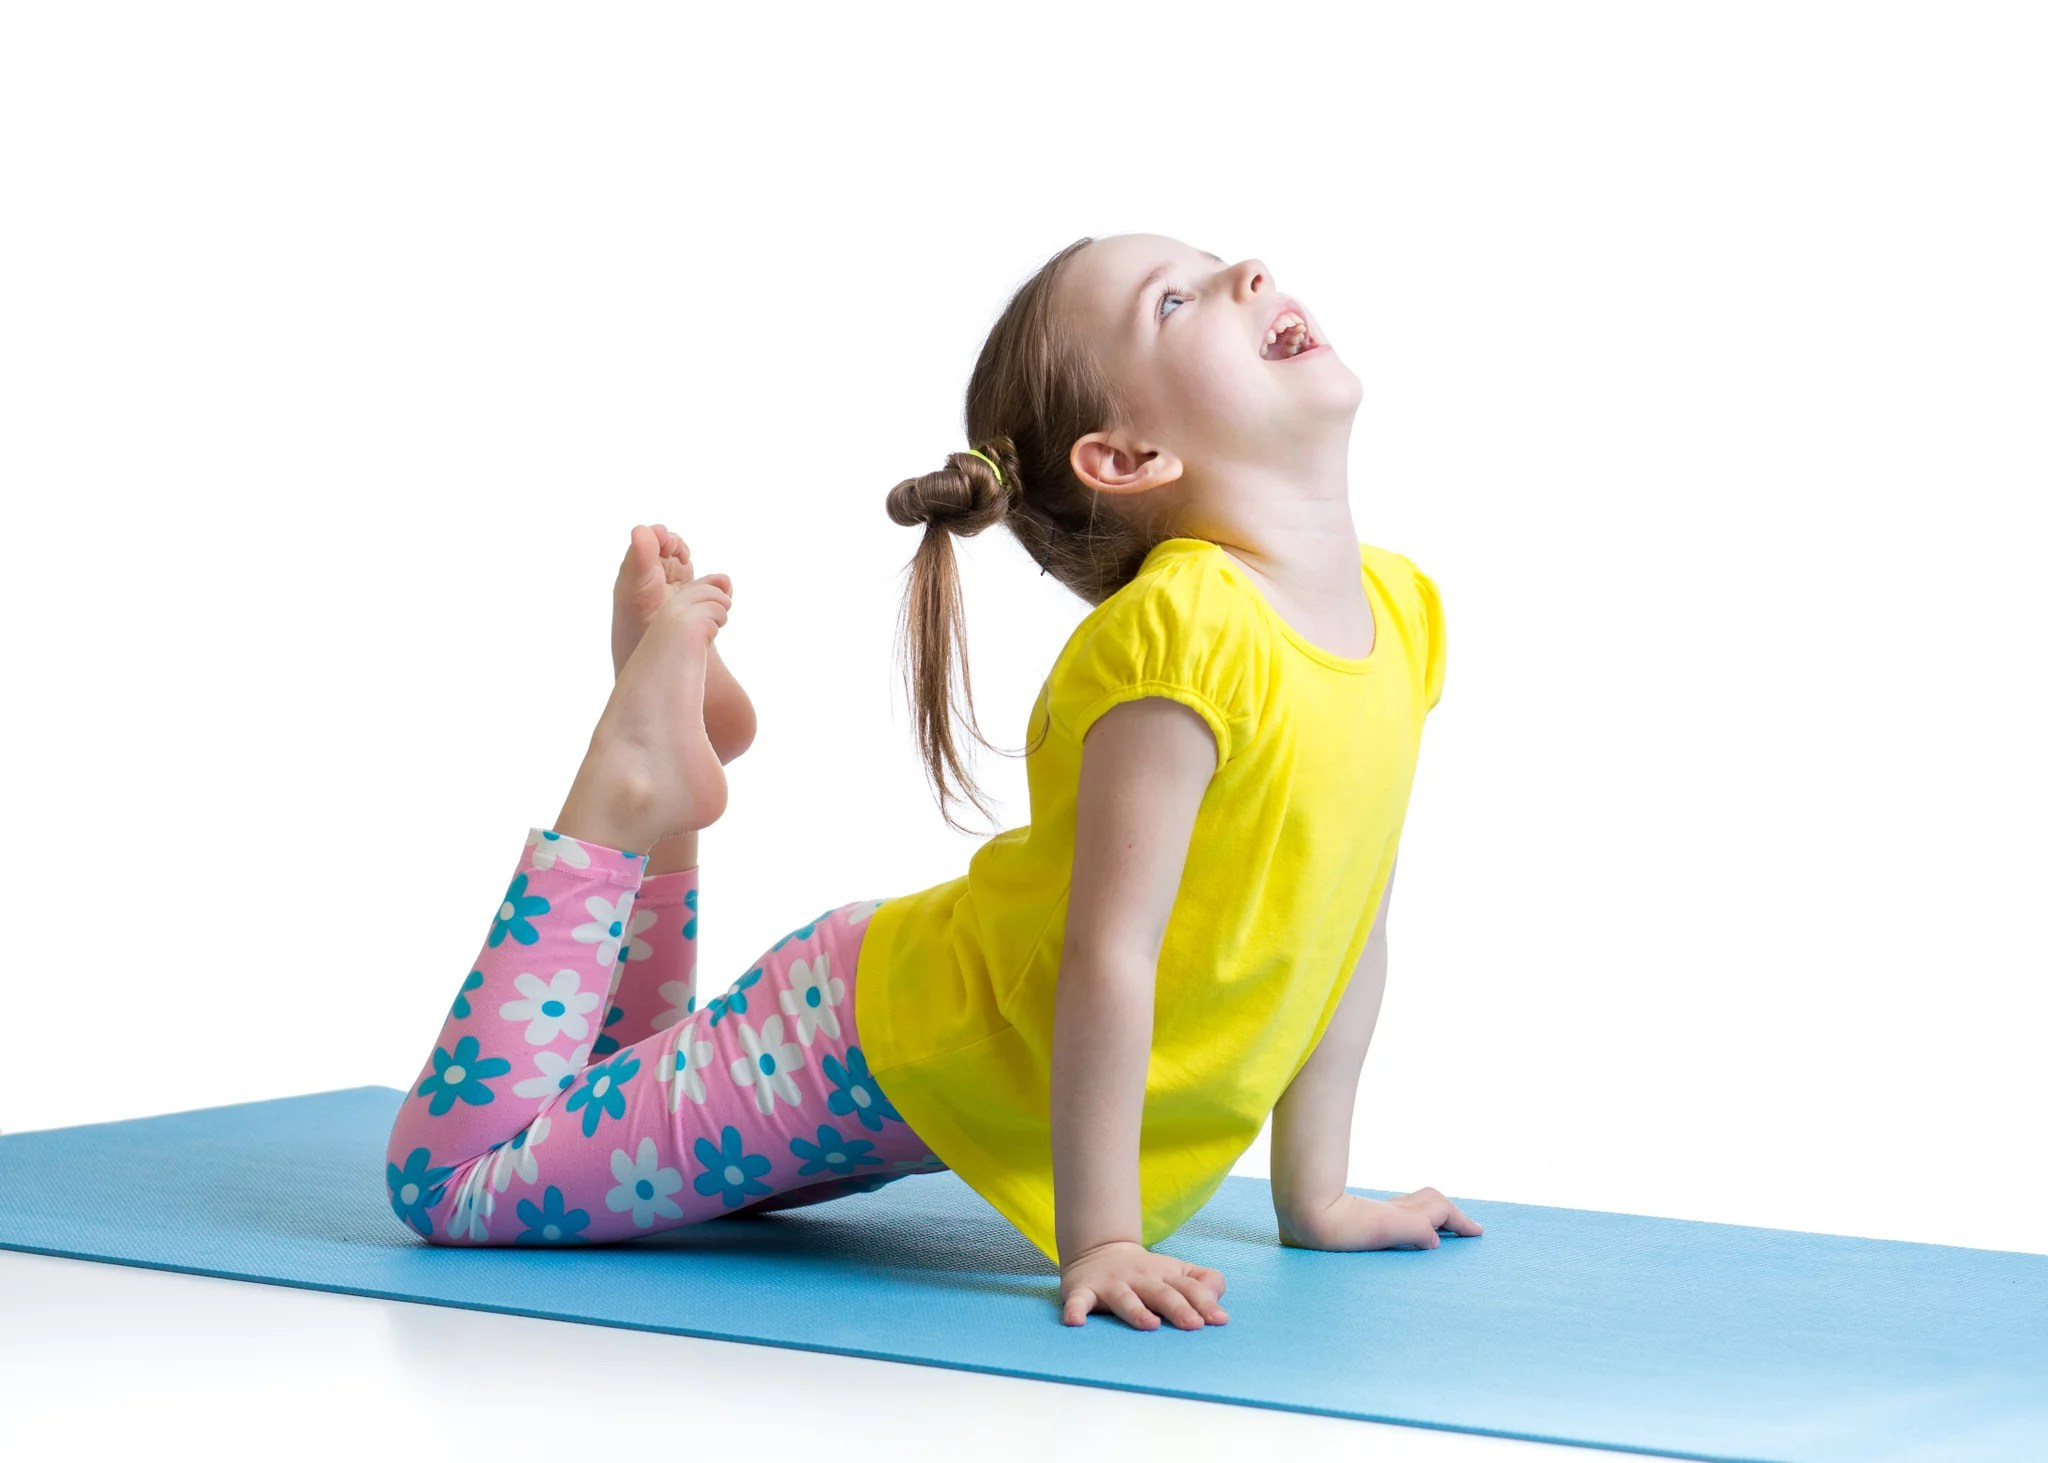 Yoga Poses You Can Do With Your Kids